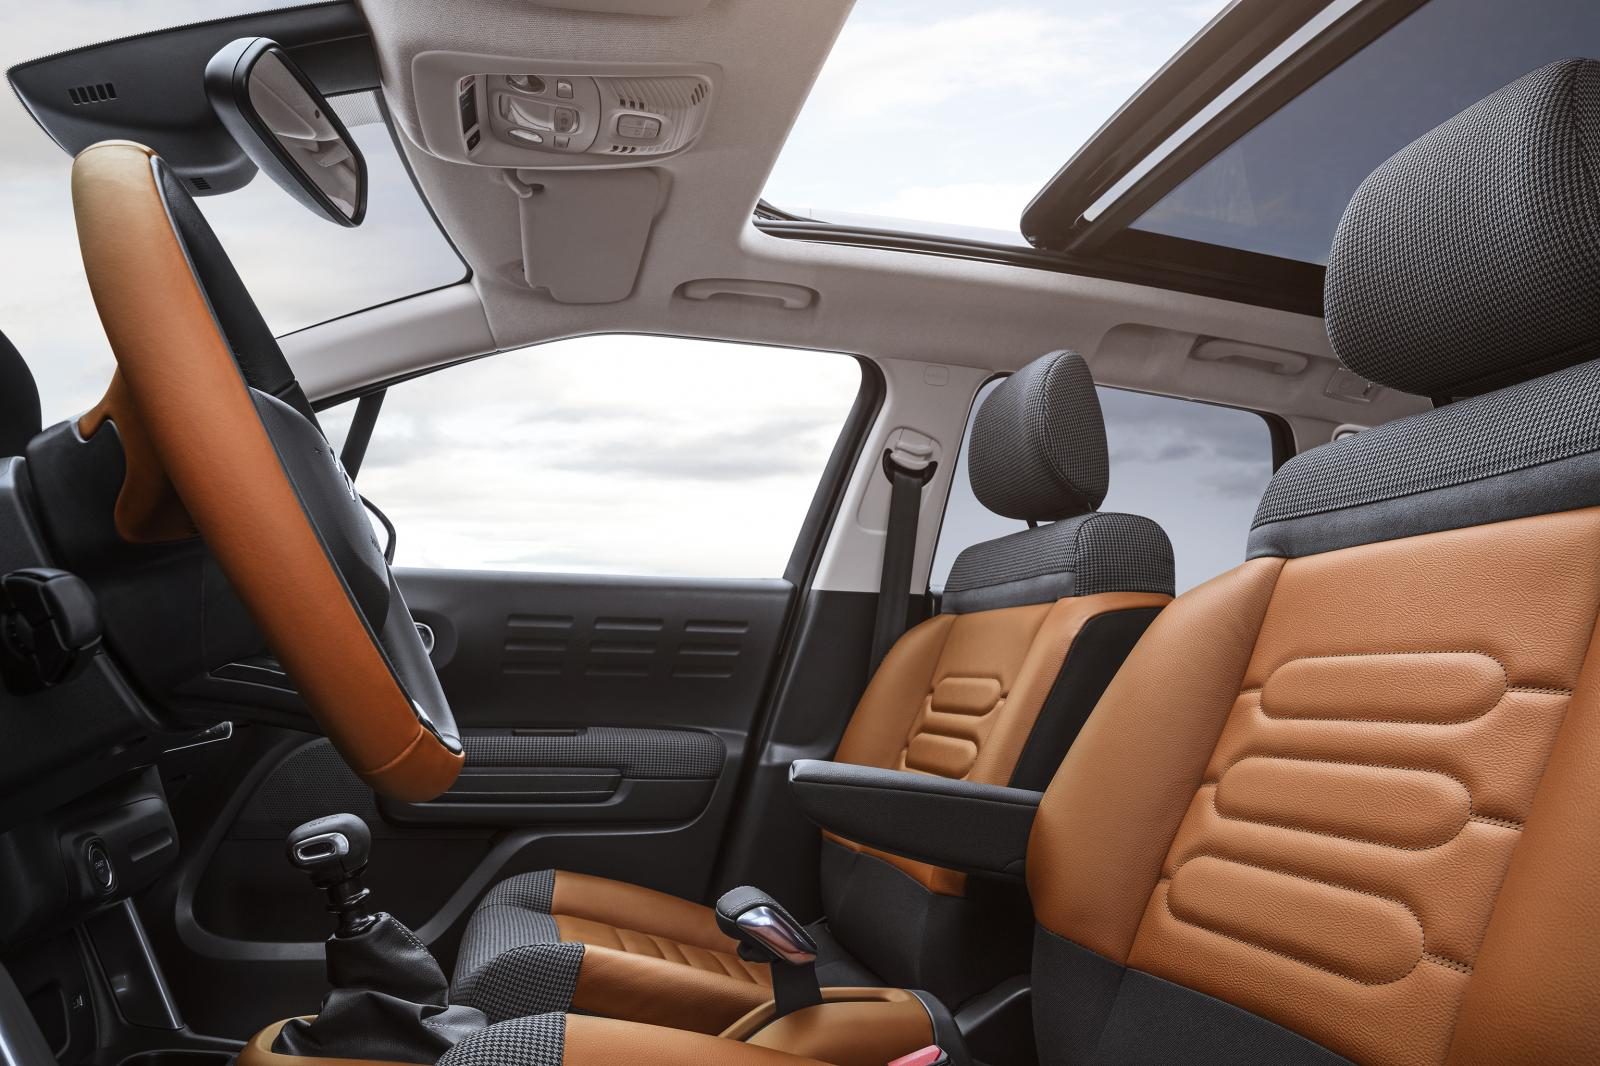 C3 Aircross Compact SUV - Front seats